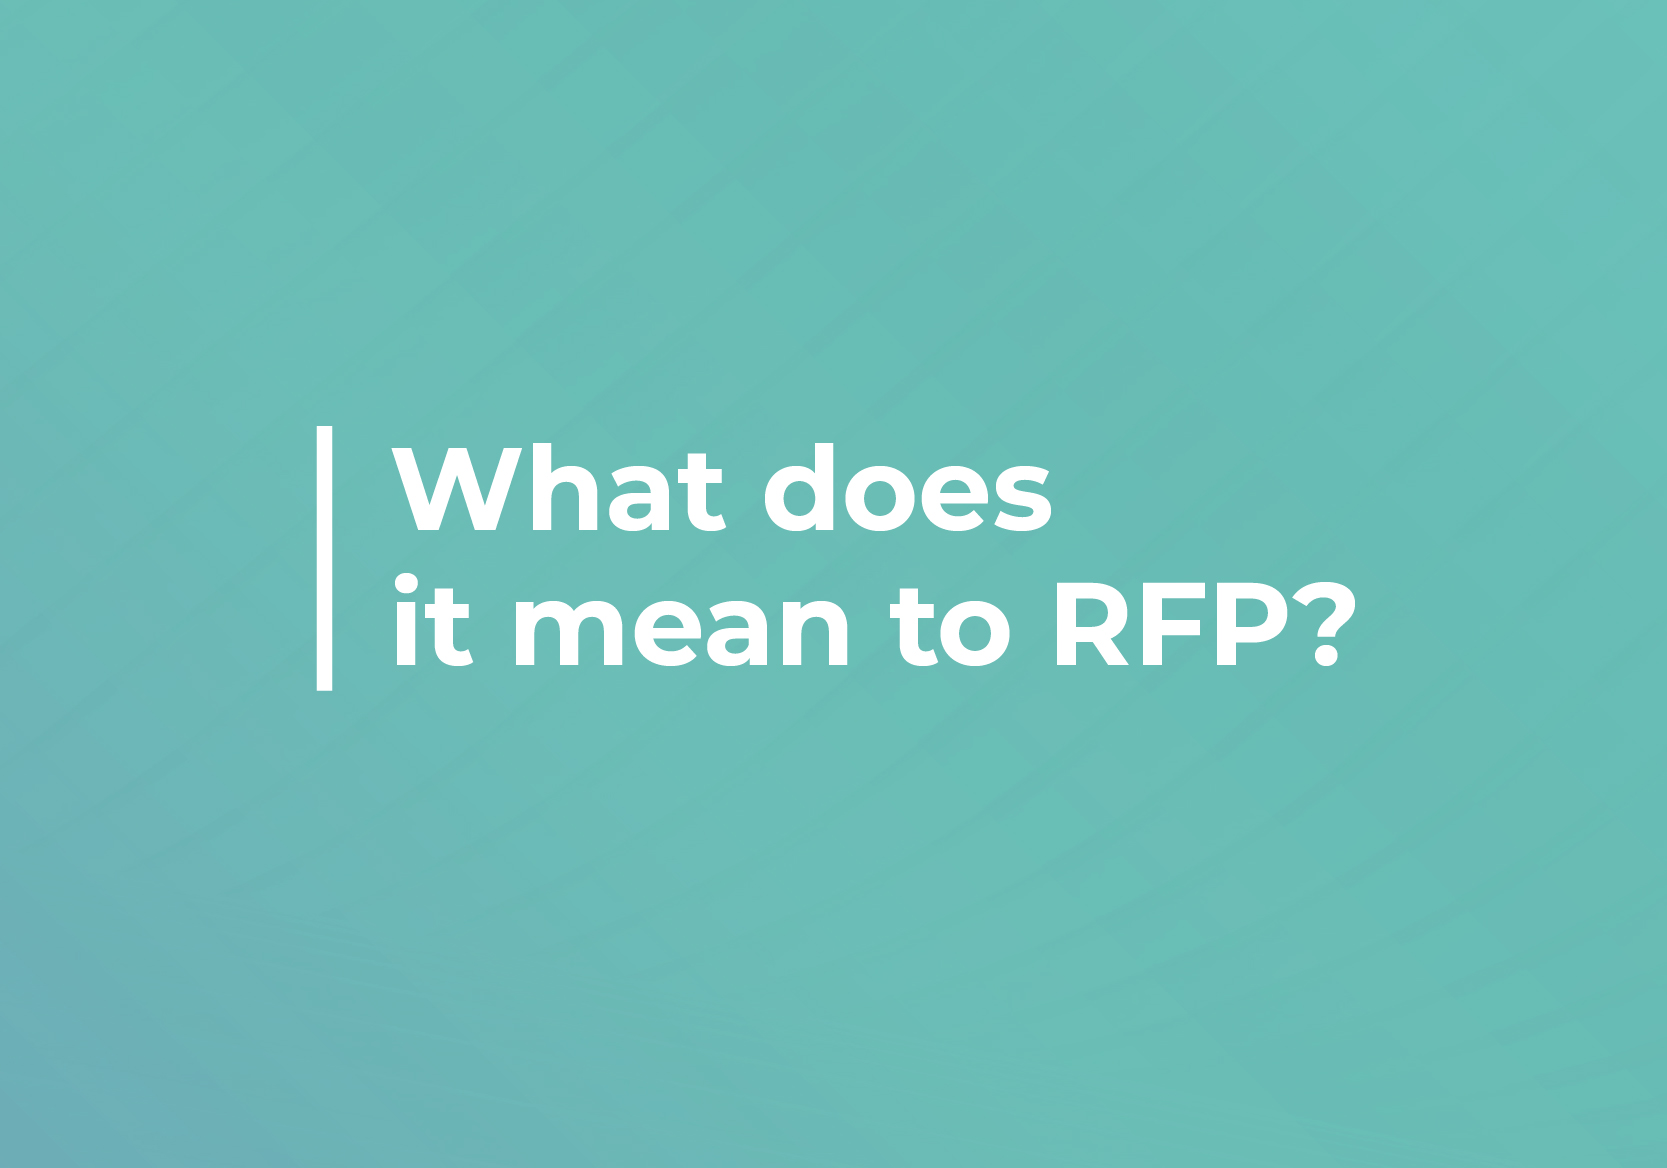 RFPWhat does it mean to RFP?